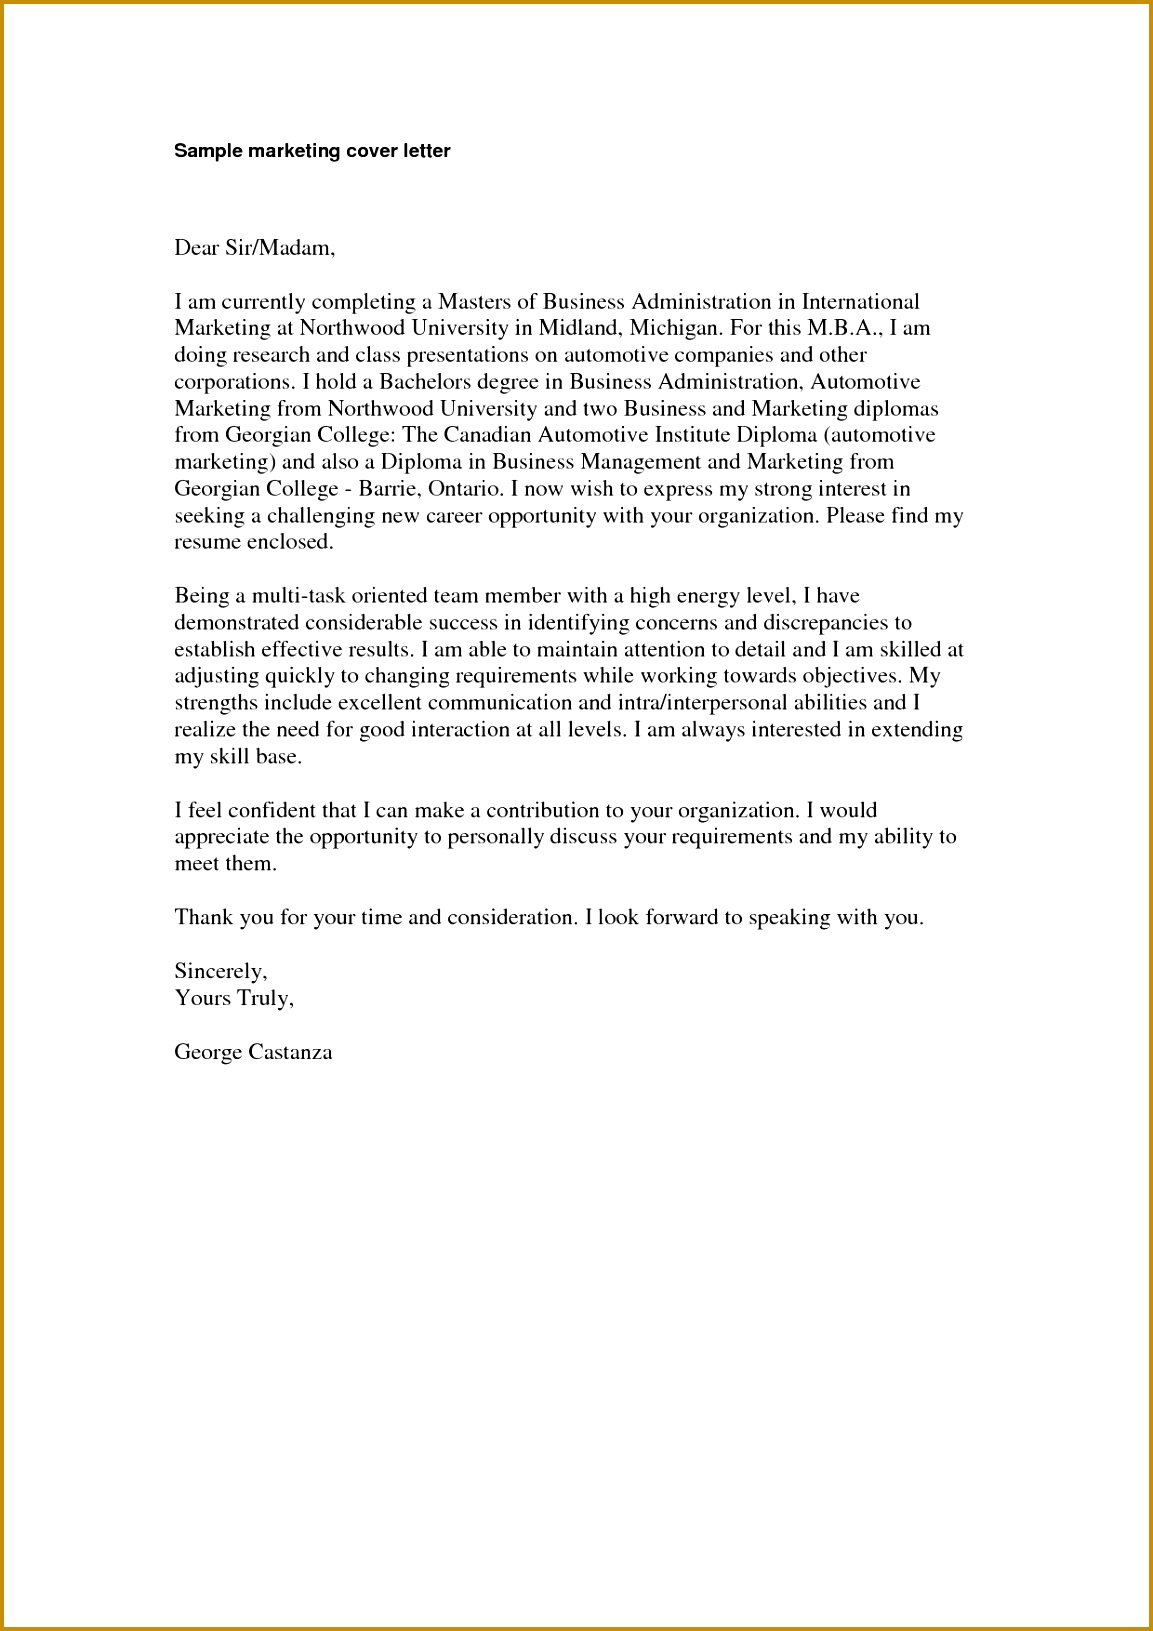 Marketing Cover Letter sample marketing cover letter will help you in creating a winning cover 16311153